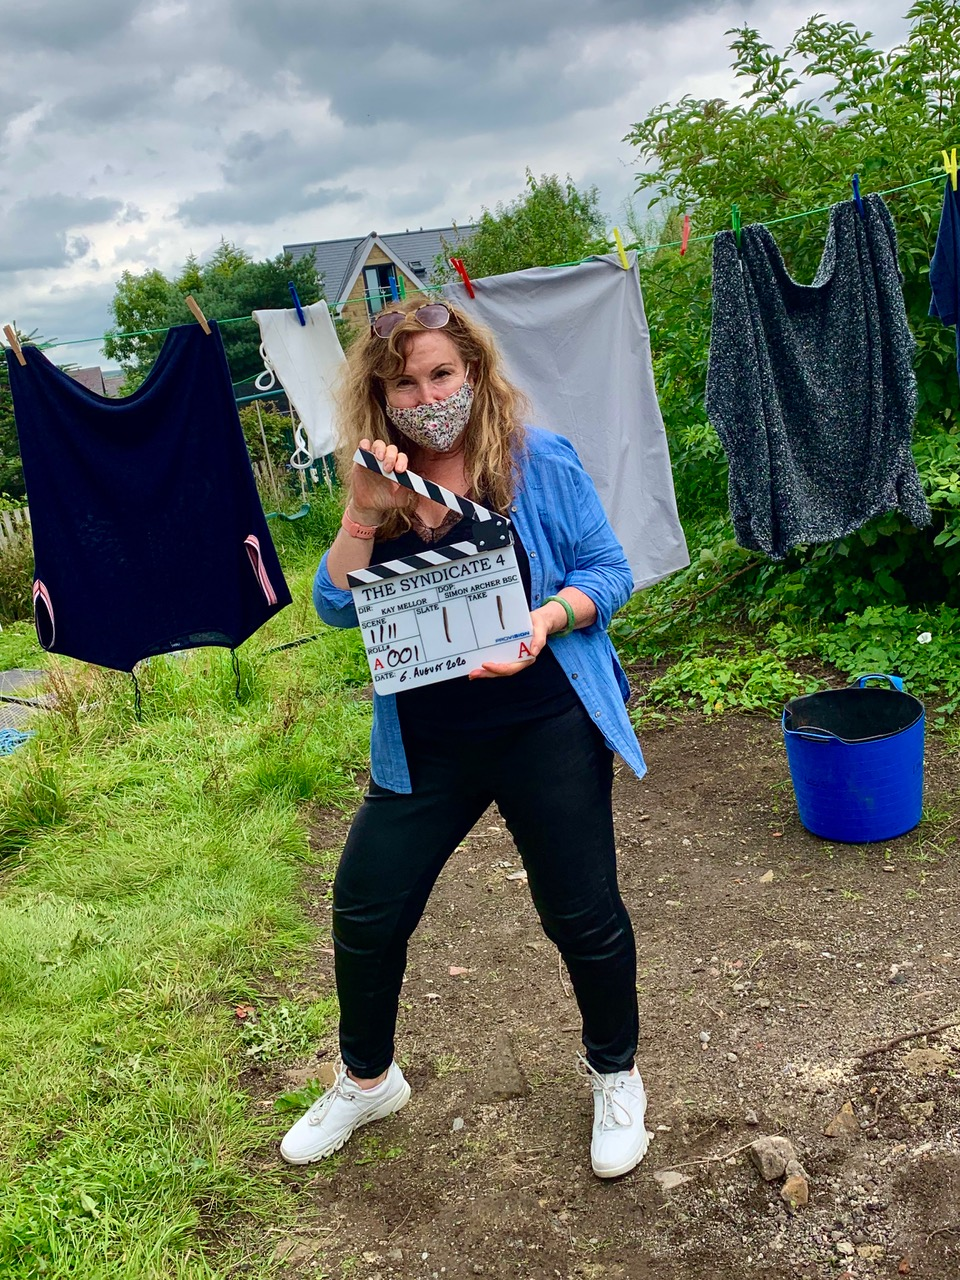 'The Syndicate' writer / director Kay Mellor on set